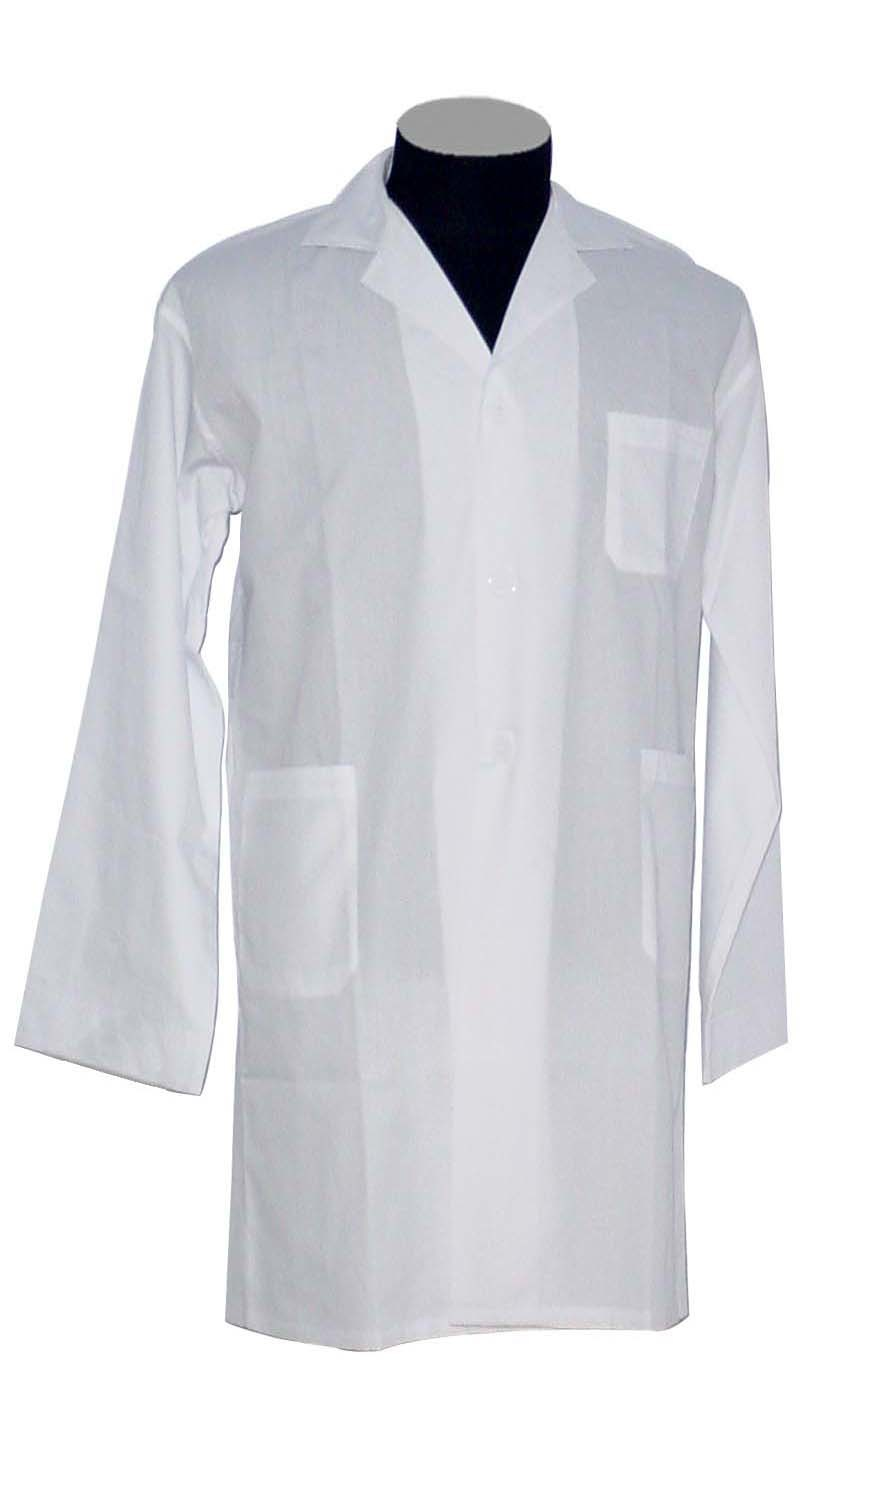 Lab Coat for Hospital High Quality 100%Cotton 230GSM